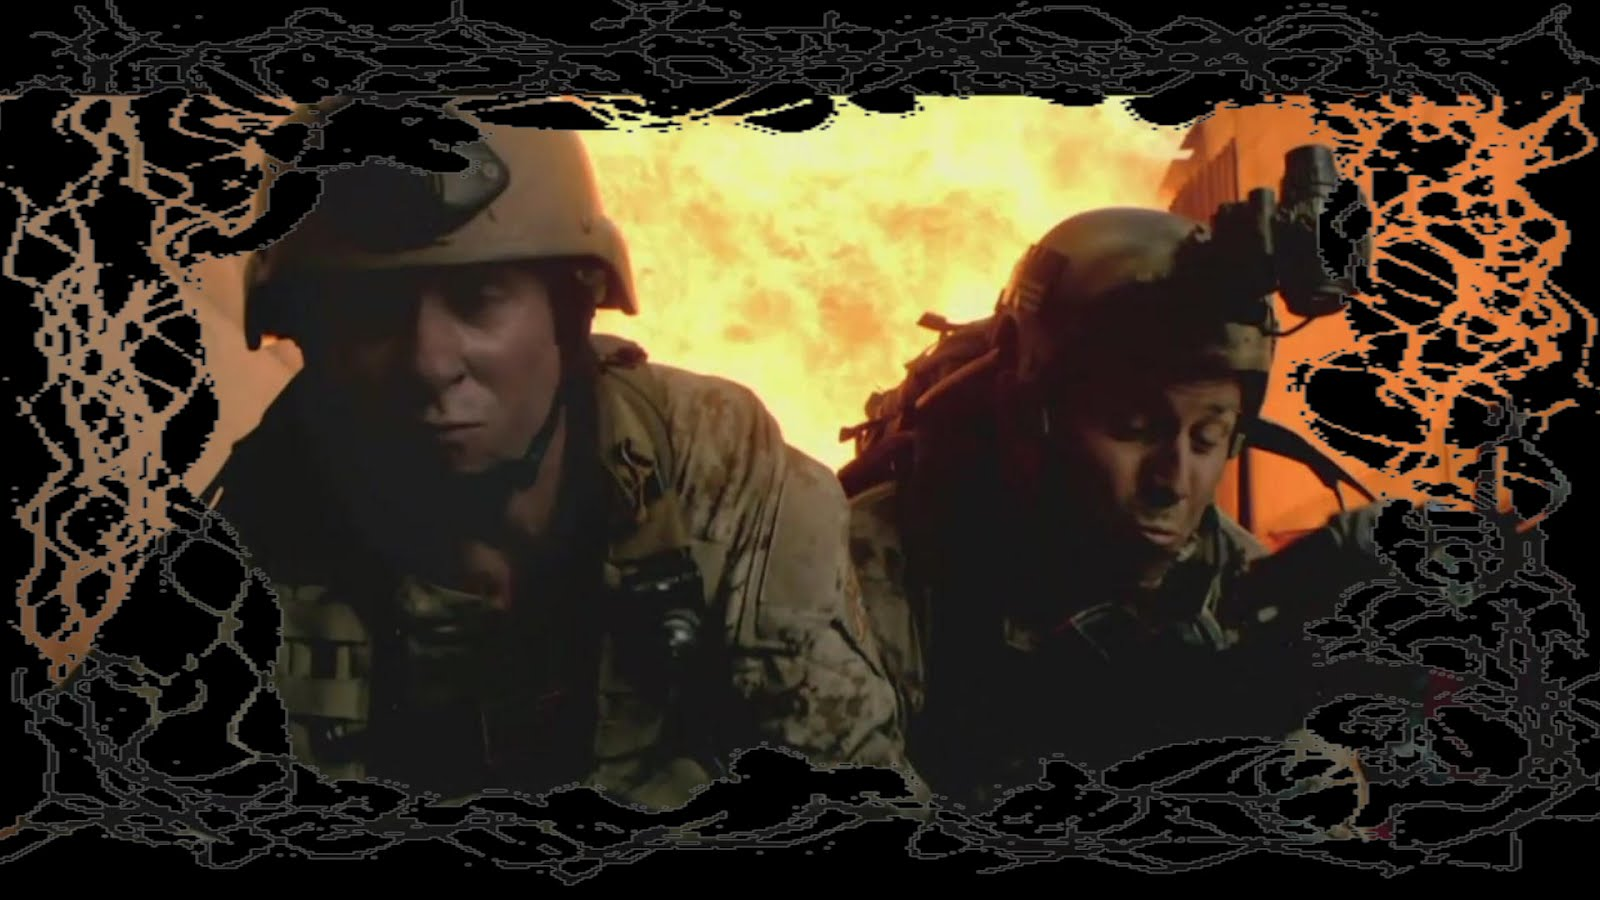 Act of Valor wallpaper : one facial expression | MoovieWatch!